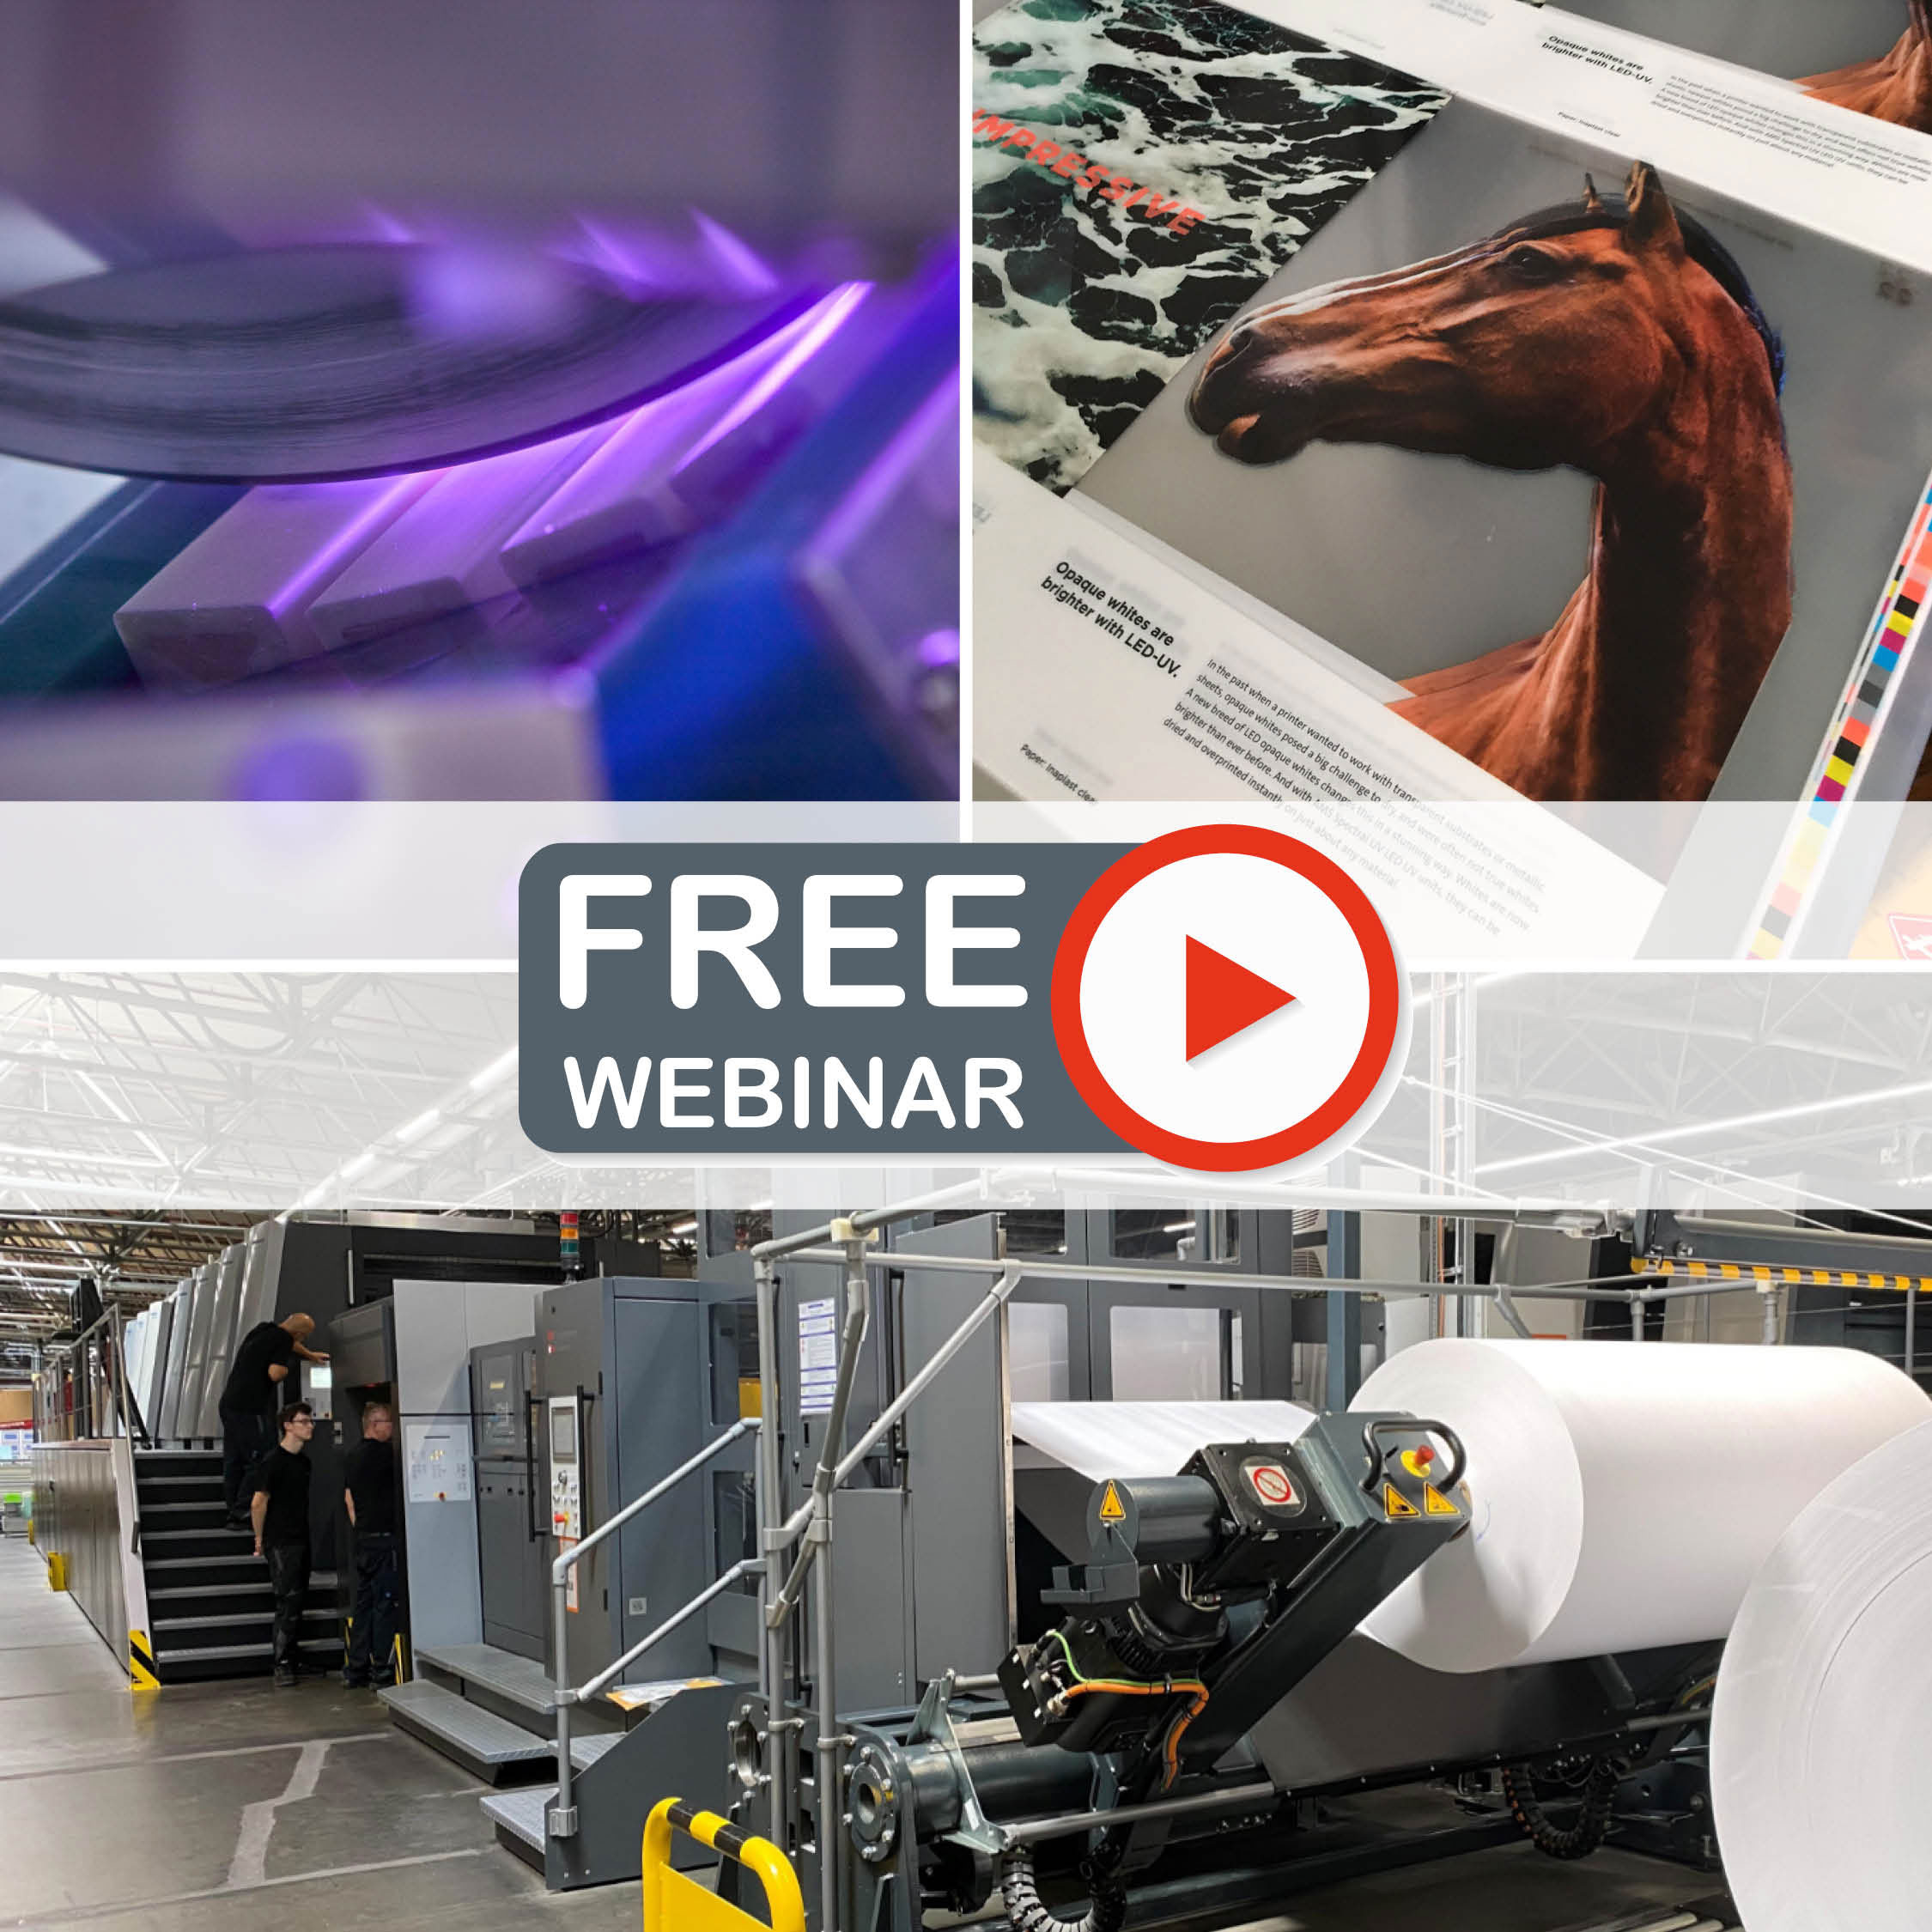 Free Webinar How to print offset efficiently